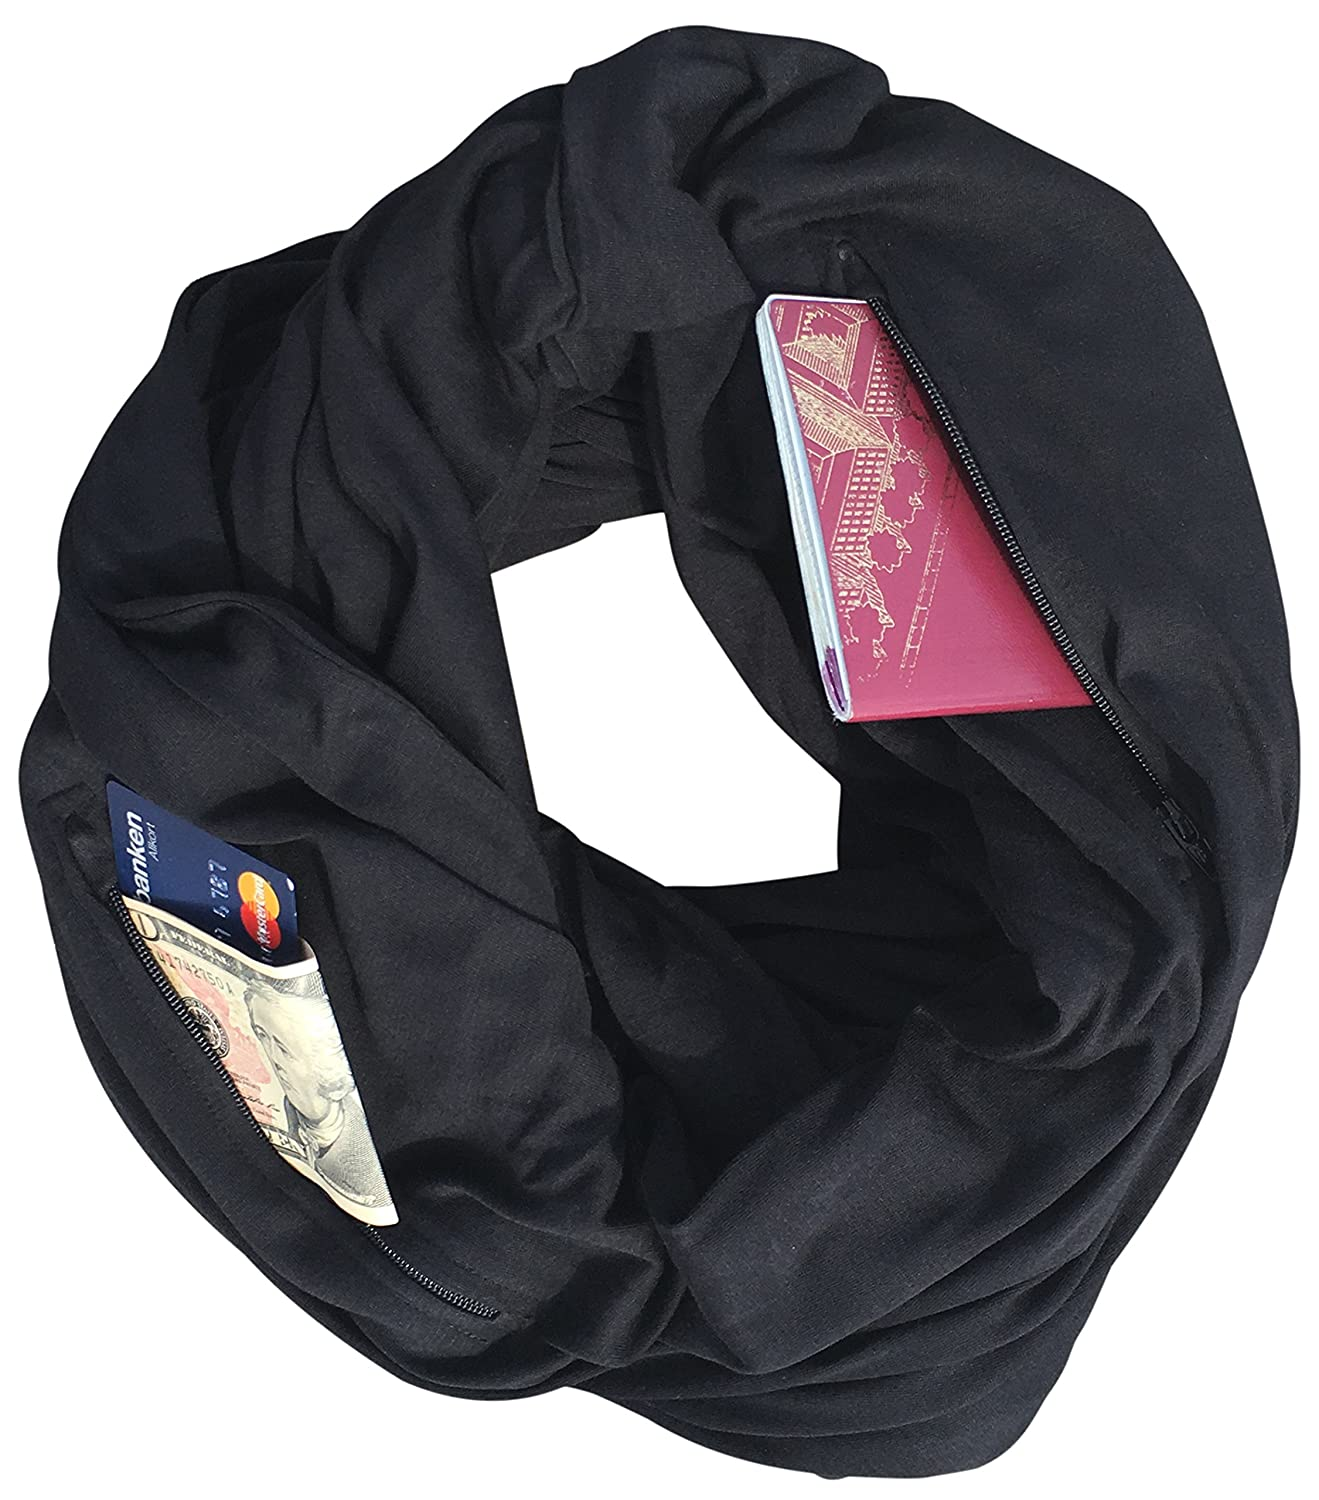 Clever Travel Companion Travel Scarf with 2 Hidden Zipper Pockets 100/% Pickpocket Proof Holiday Tour 00-01S030S Black